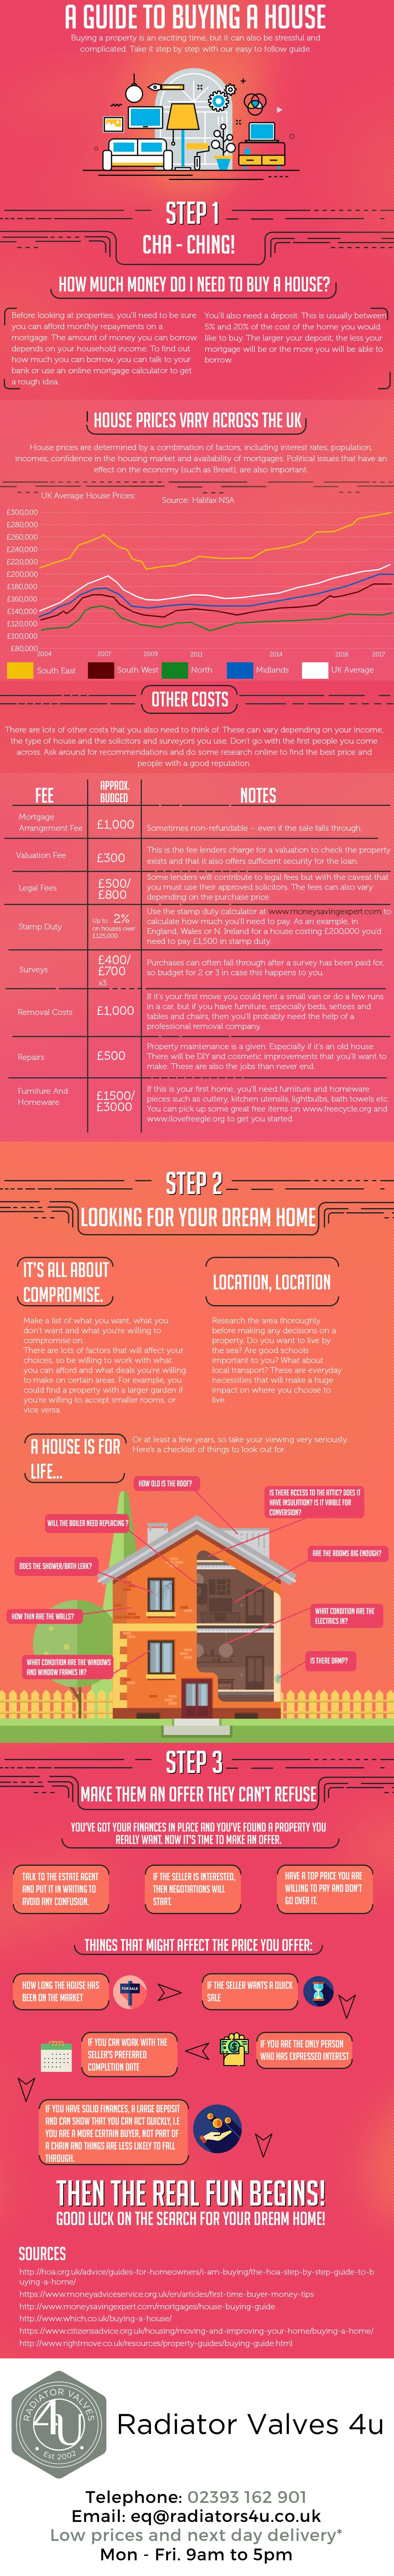 Infographic - House buying guide